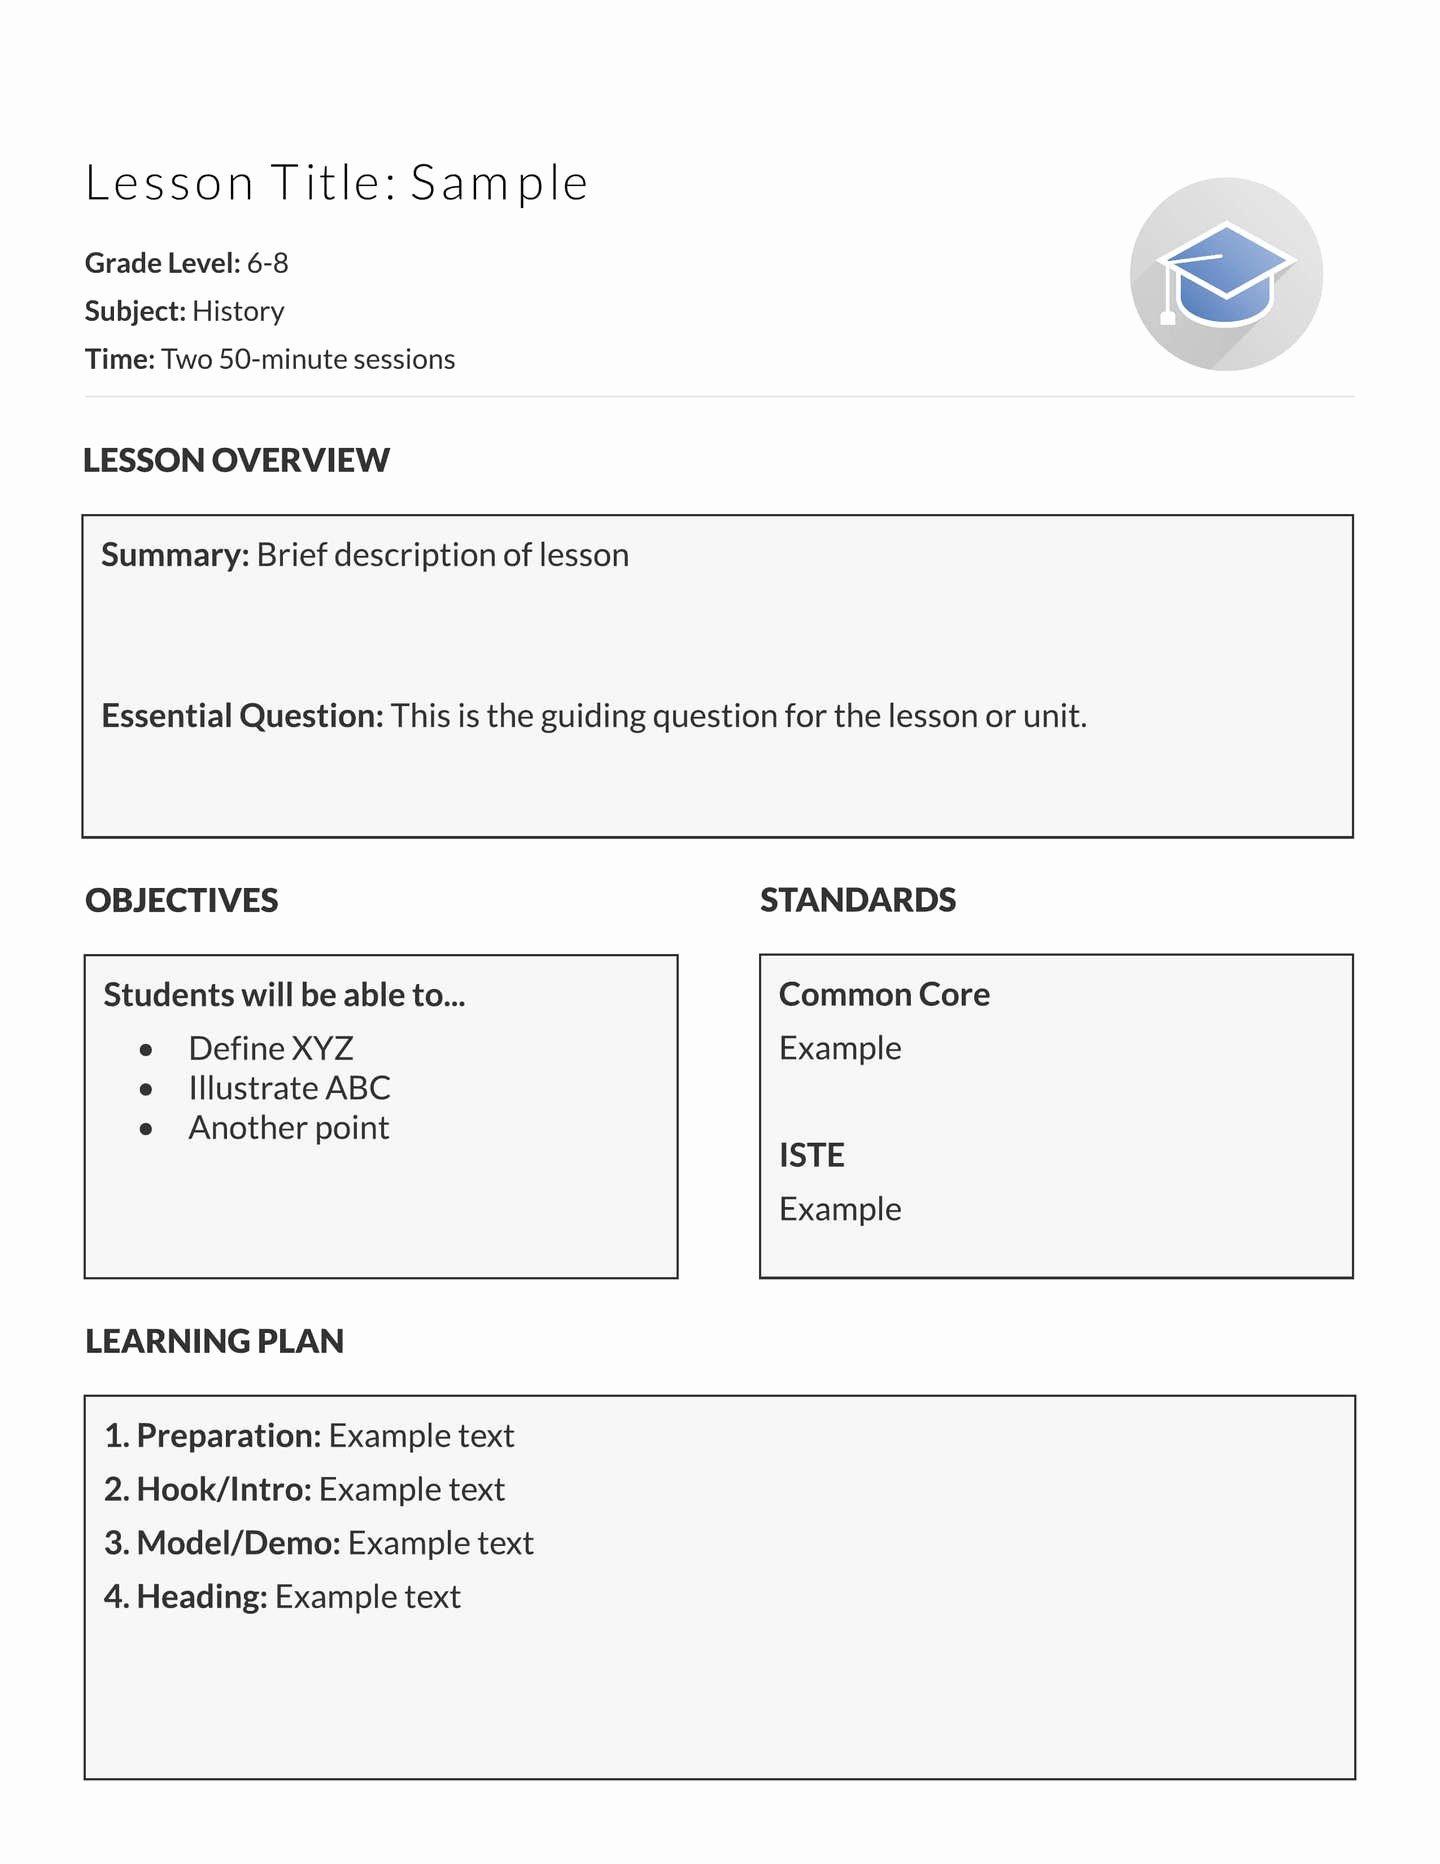 Example Lesson Plan Template Unique 5 Free Lesson Plan Templates & Examples Lucidpress